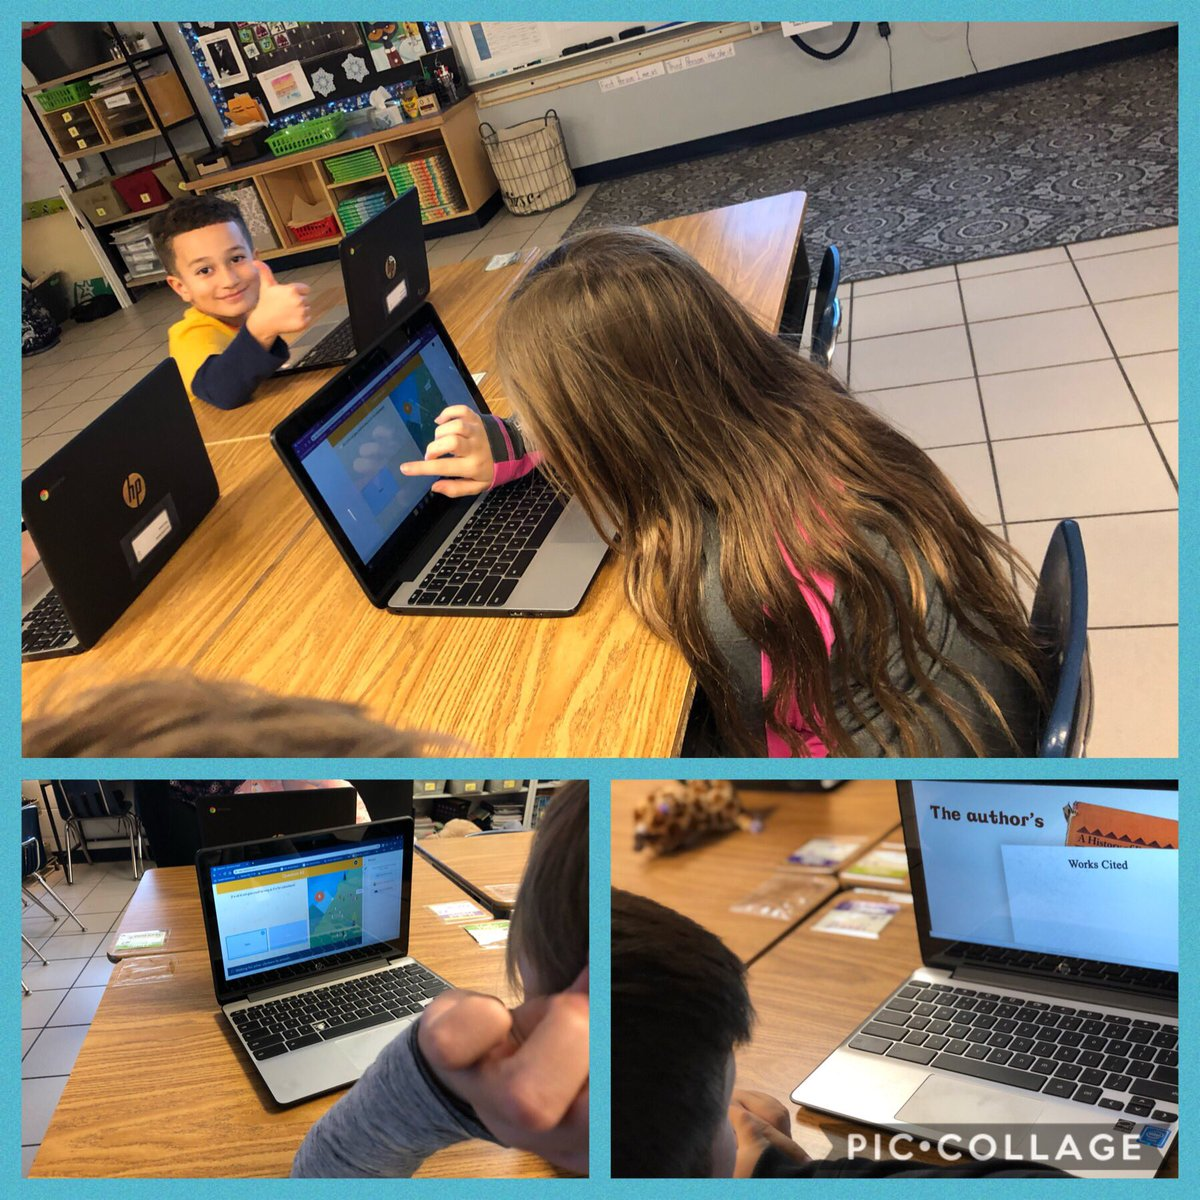 Getting that @nearpod & @Flocabulary love today! 👍 #BWBraveTech #vbits @VBTitleI @Jmw3013